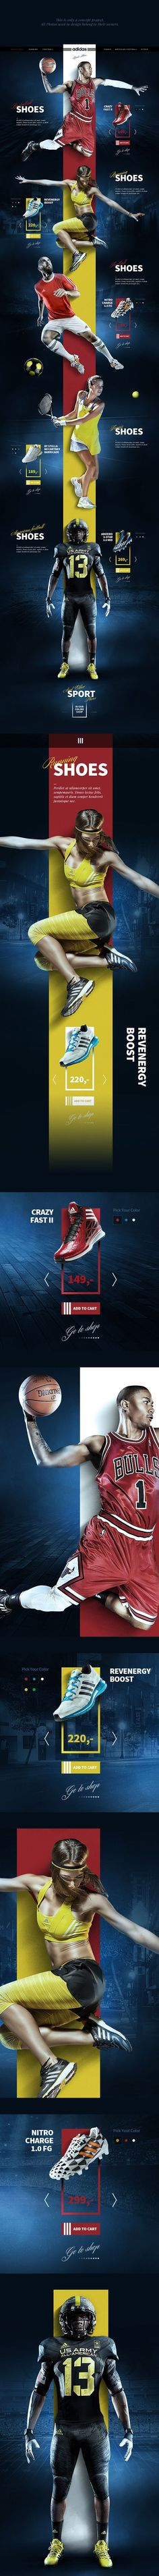 Sport Shoes Concept on Behance